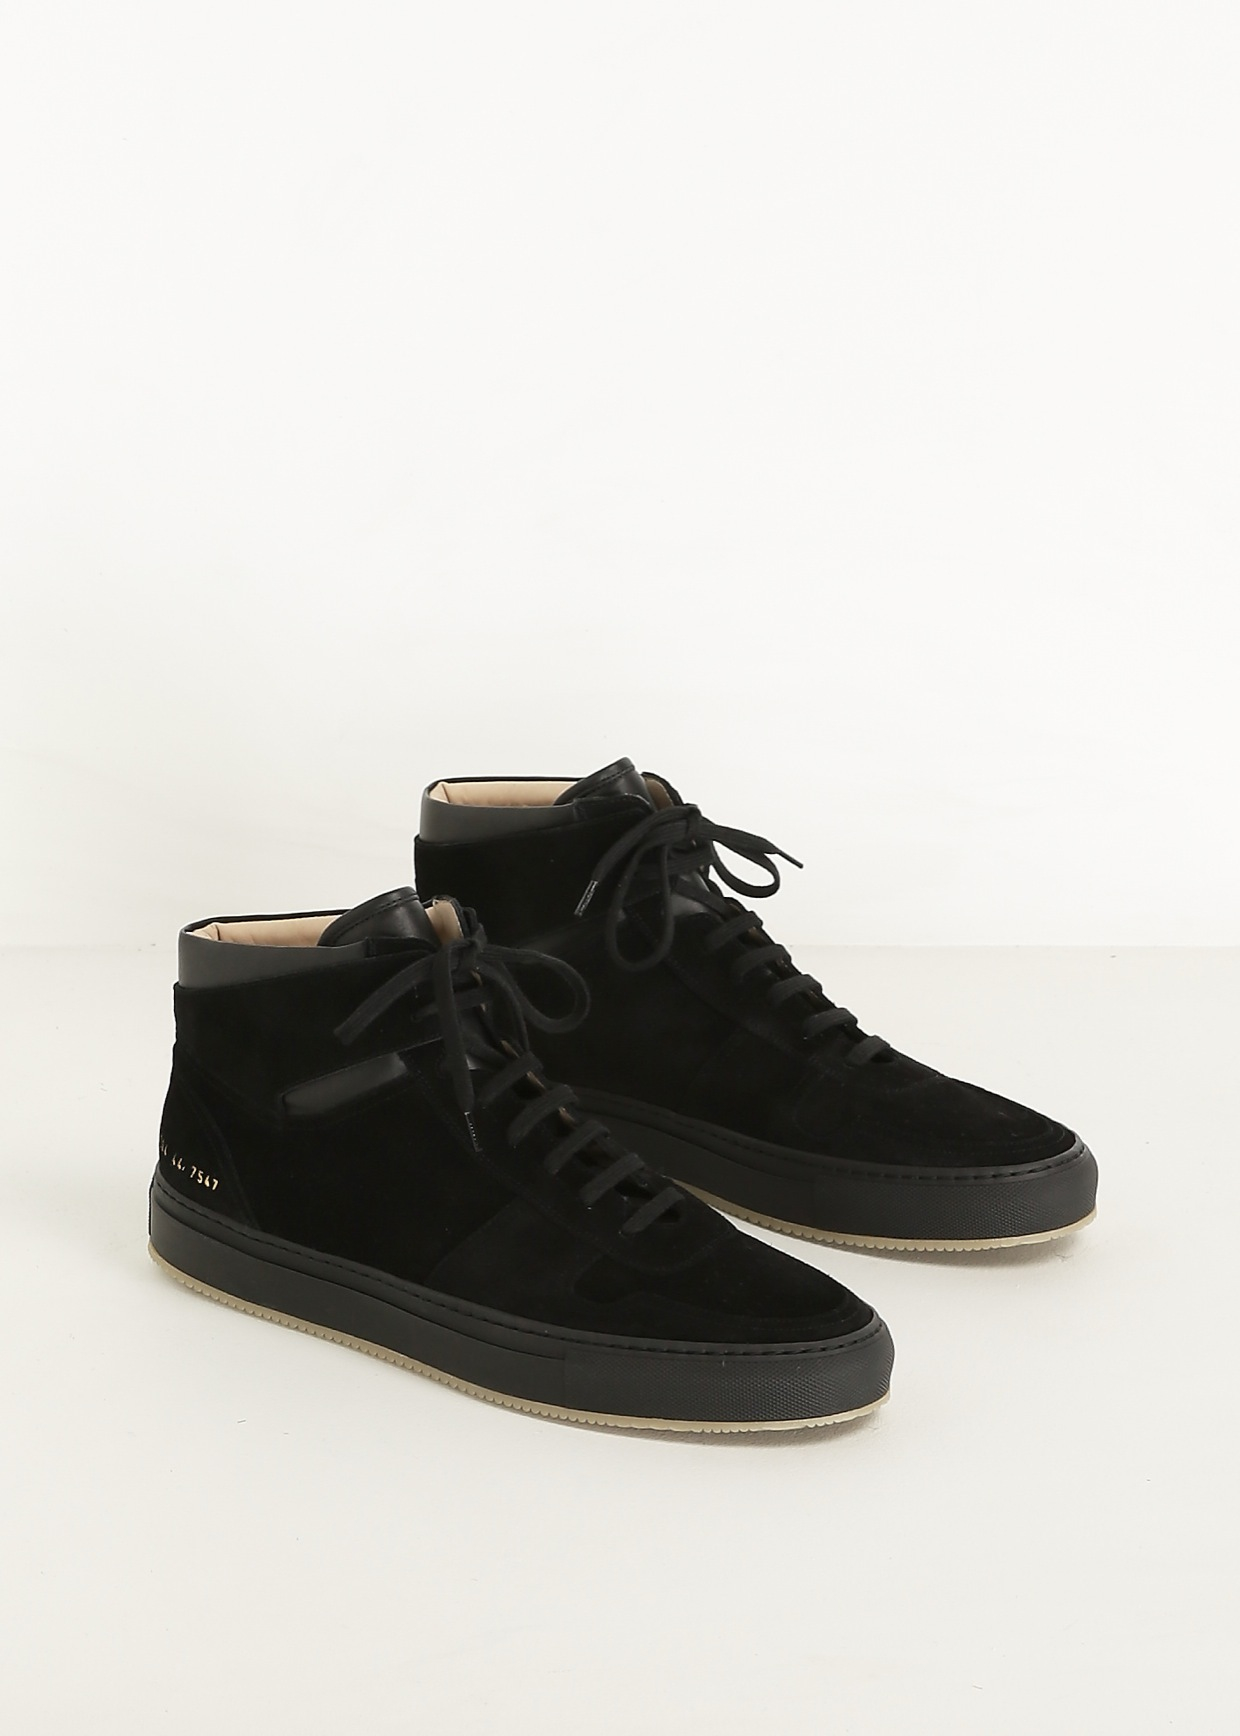 95a68249174 Lyst - Common Projects Black Bball High Suede Sneaker in Black for Men